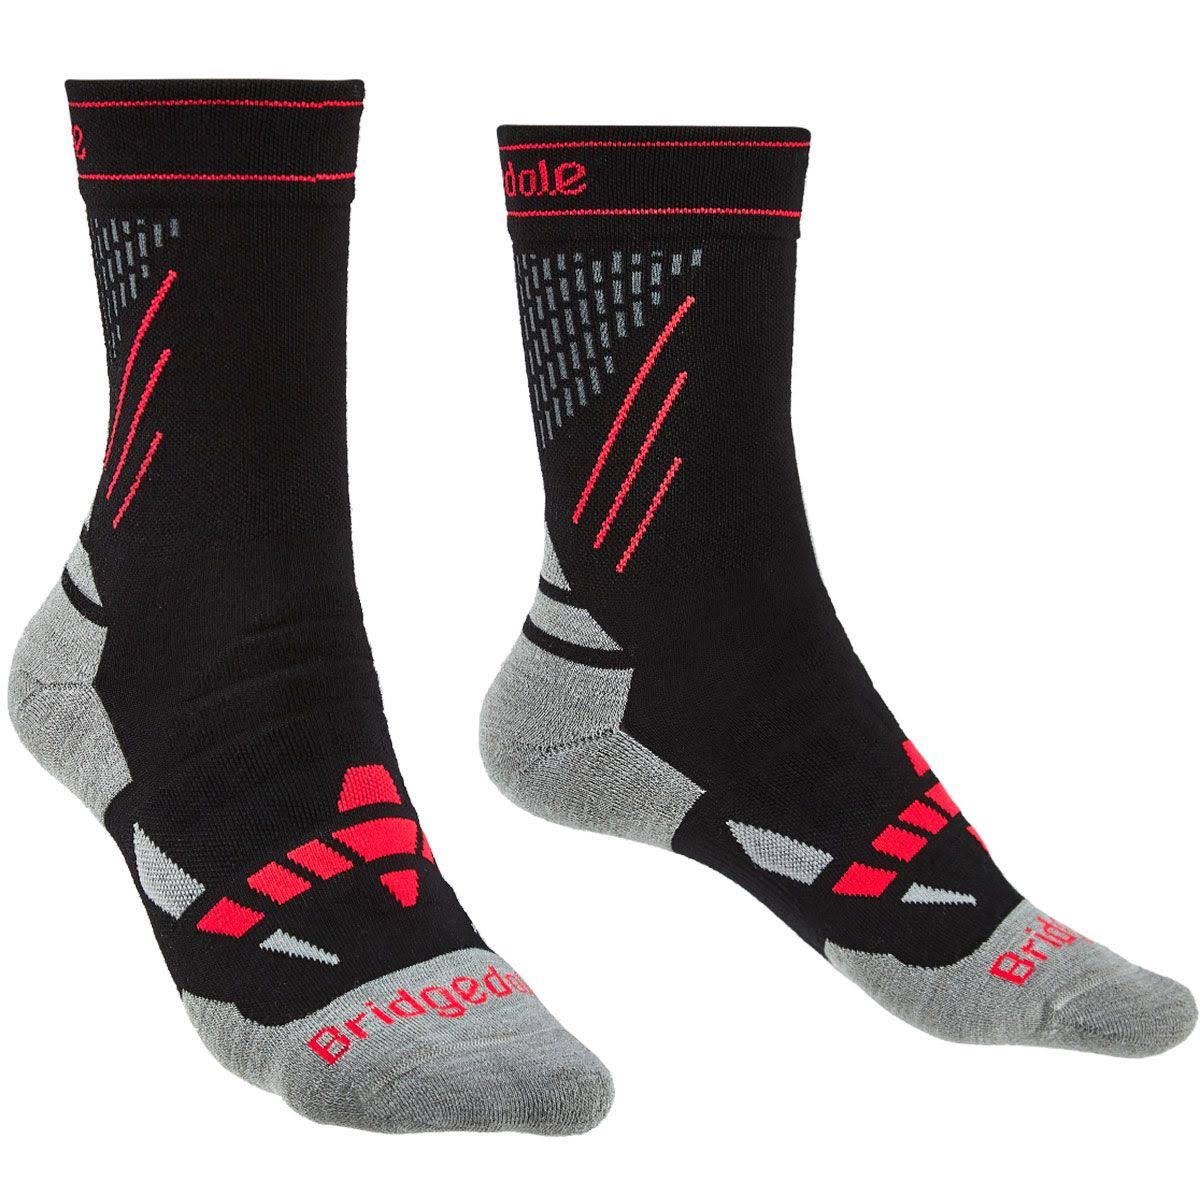 Bridgedale Women's Nordic Race Ski Socks - Black